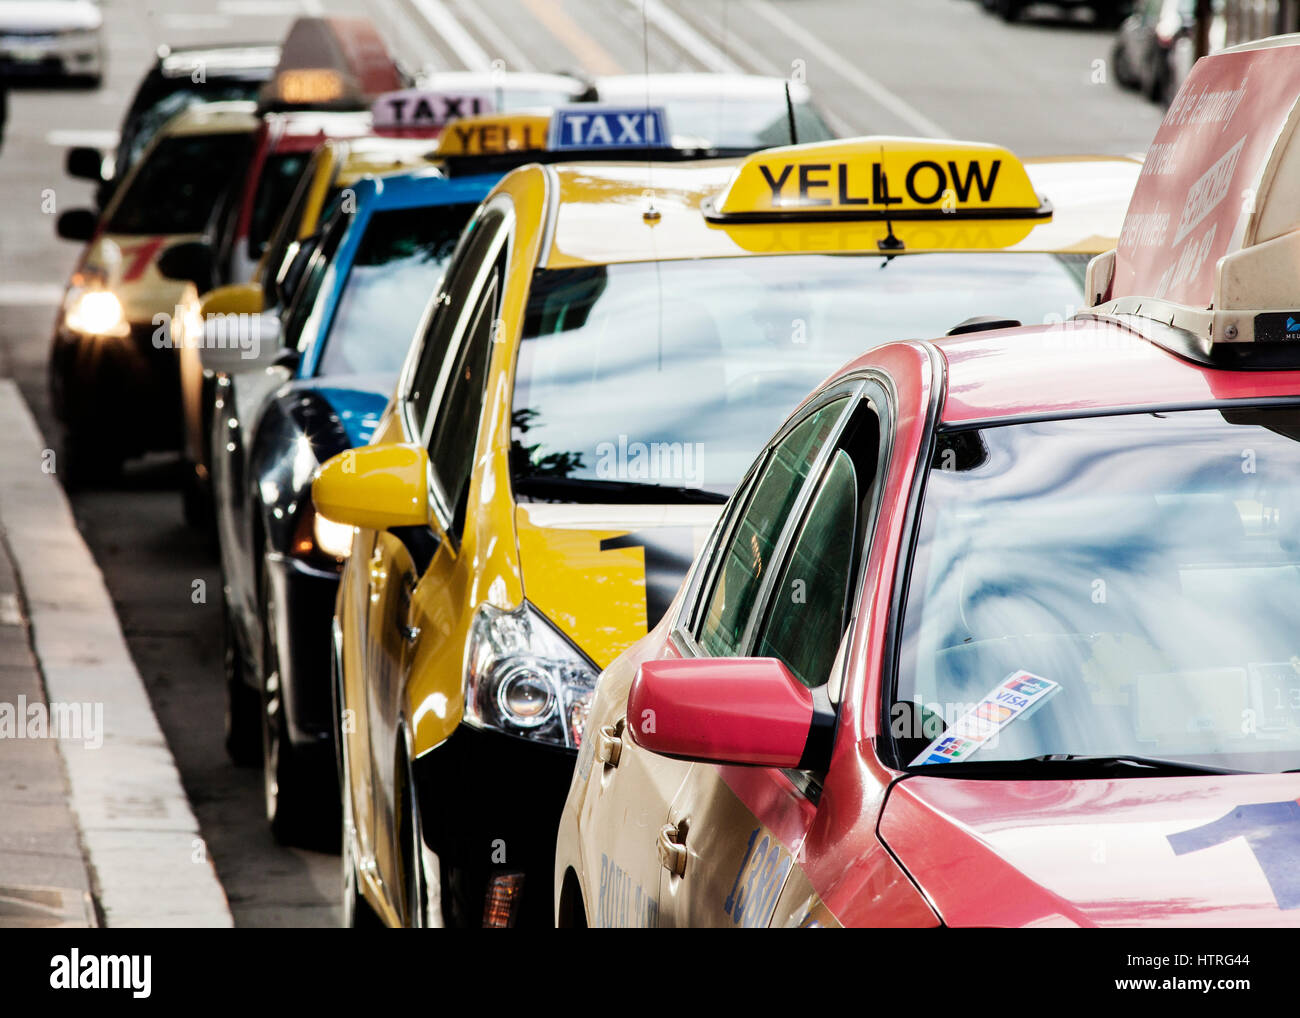 A row of colorful taxis. - Stock Image